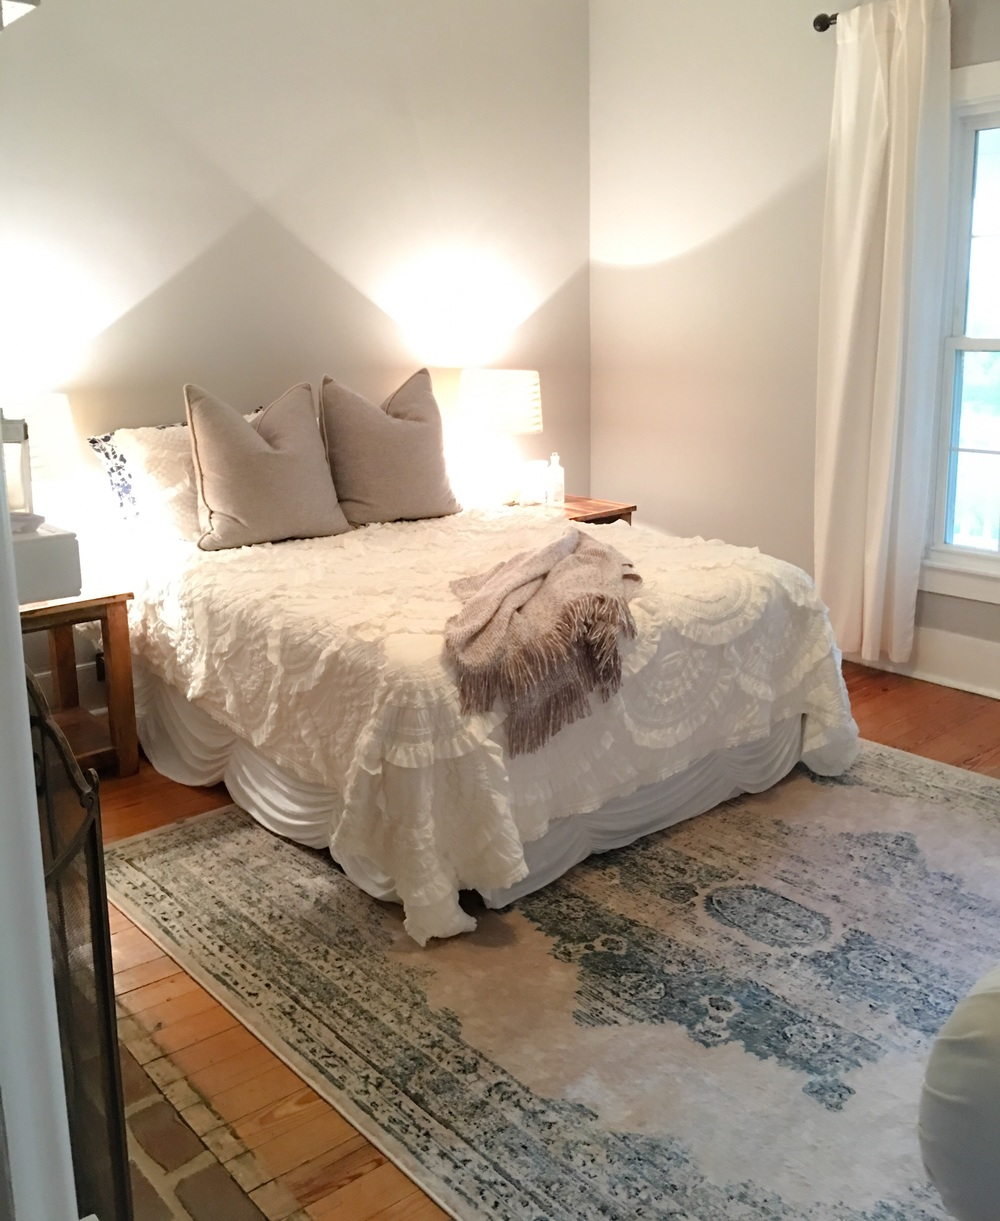 Paint:  Behr, Gentle Rain   Gray Pillows:  Schoolhouse Electric   Bedding & White Pillows:  Anthropologie   Bedskirt:  Anthropologie   Lamps: Target  Throw:  Crate & Barrel   Rug:  Rugs USA    Curtains: West Elm  Nightstands: Reclaimed Barn Wood